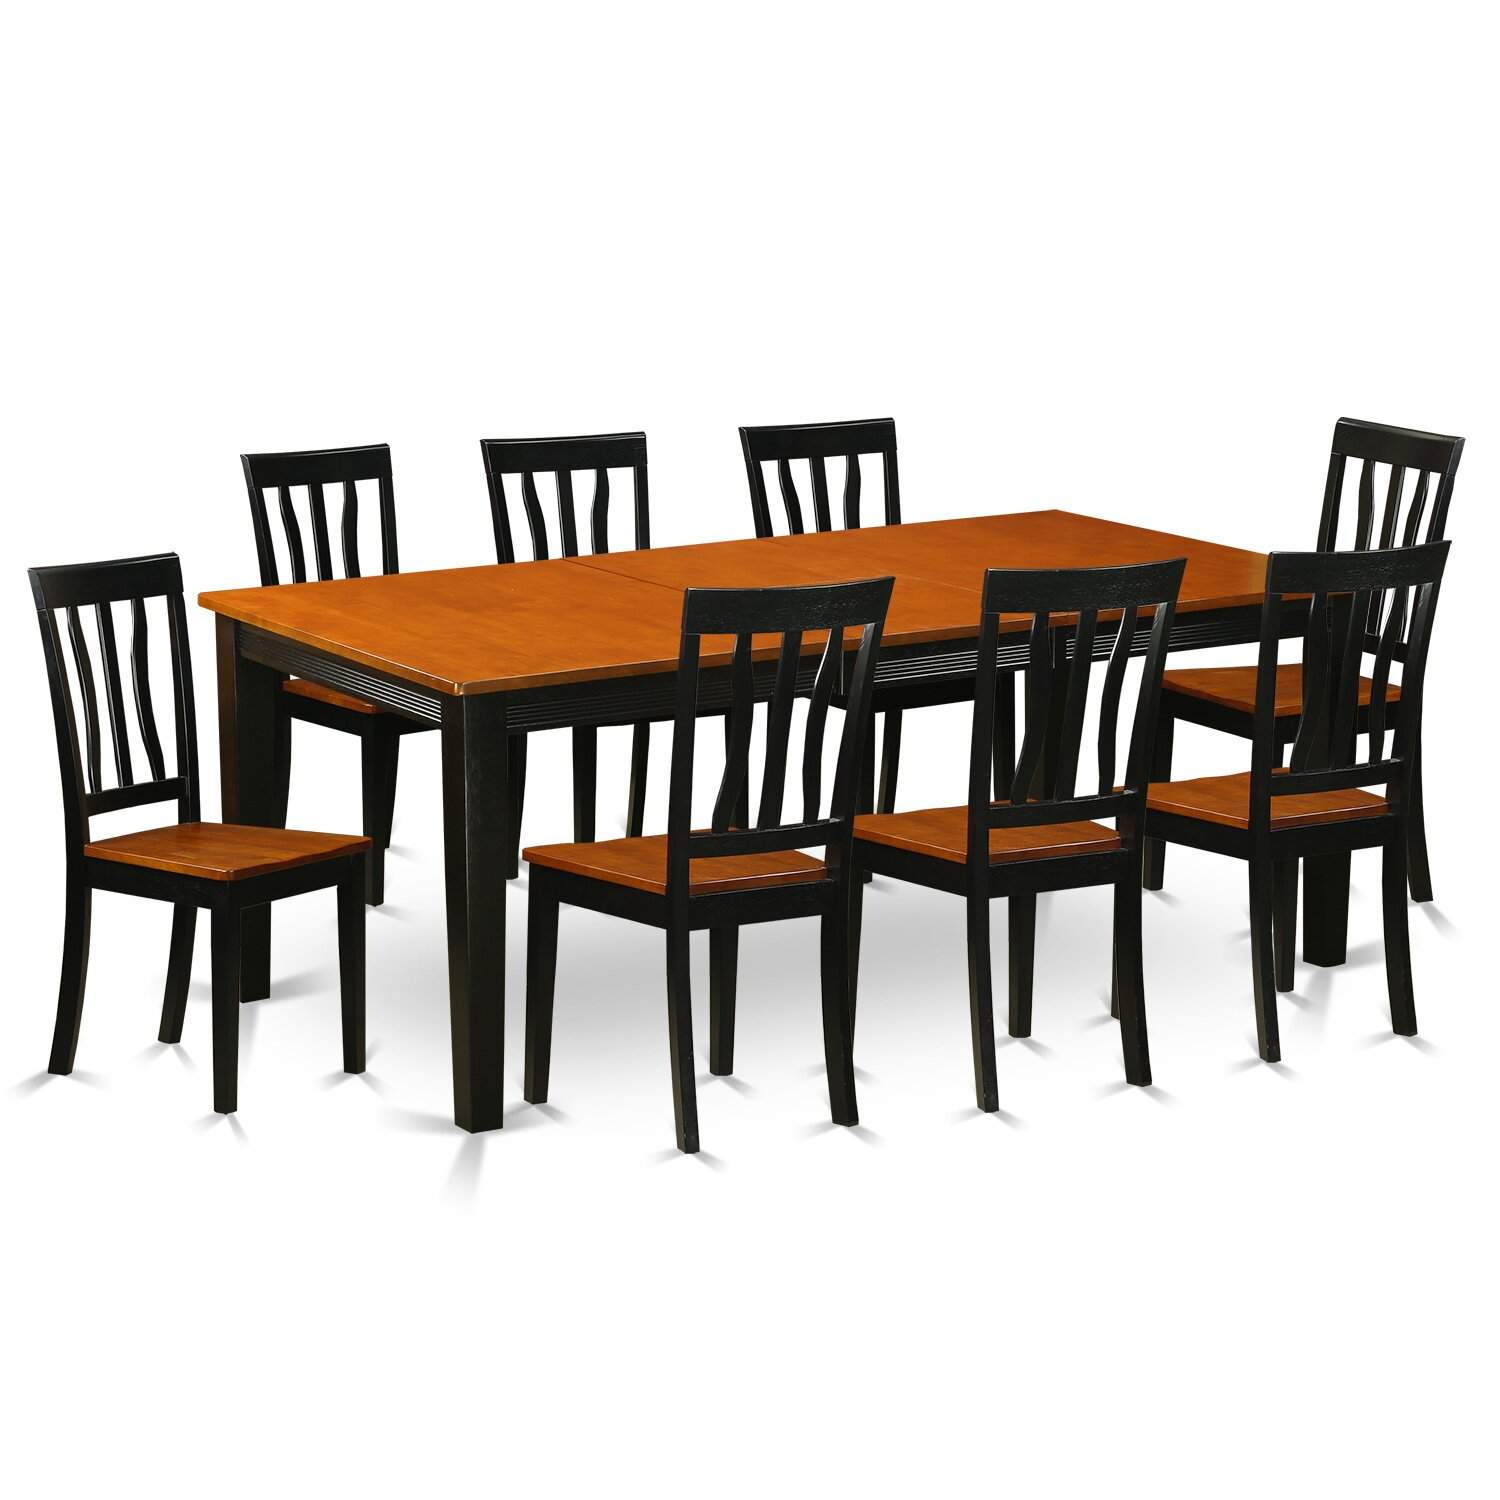 Wooden importers quincy 9 piece dining set wayfair for 9 pc dining room table sets